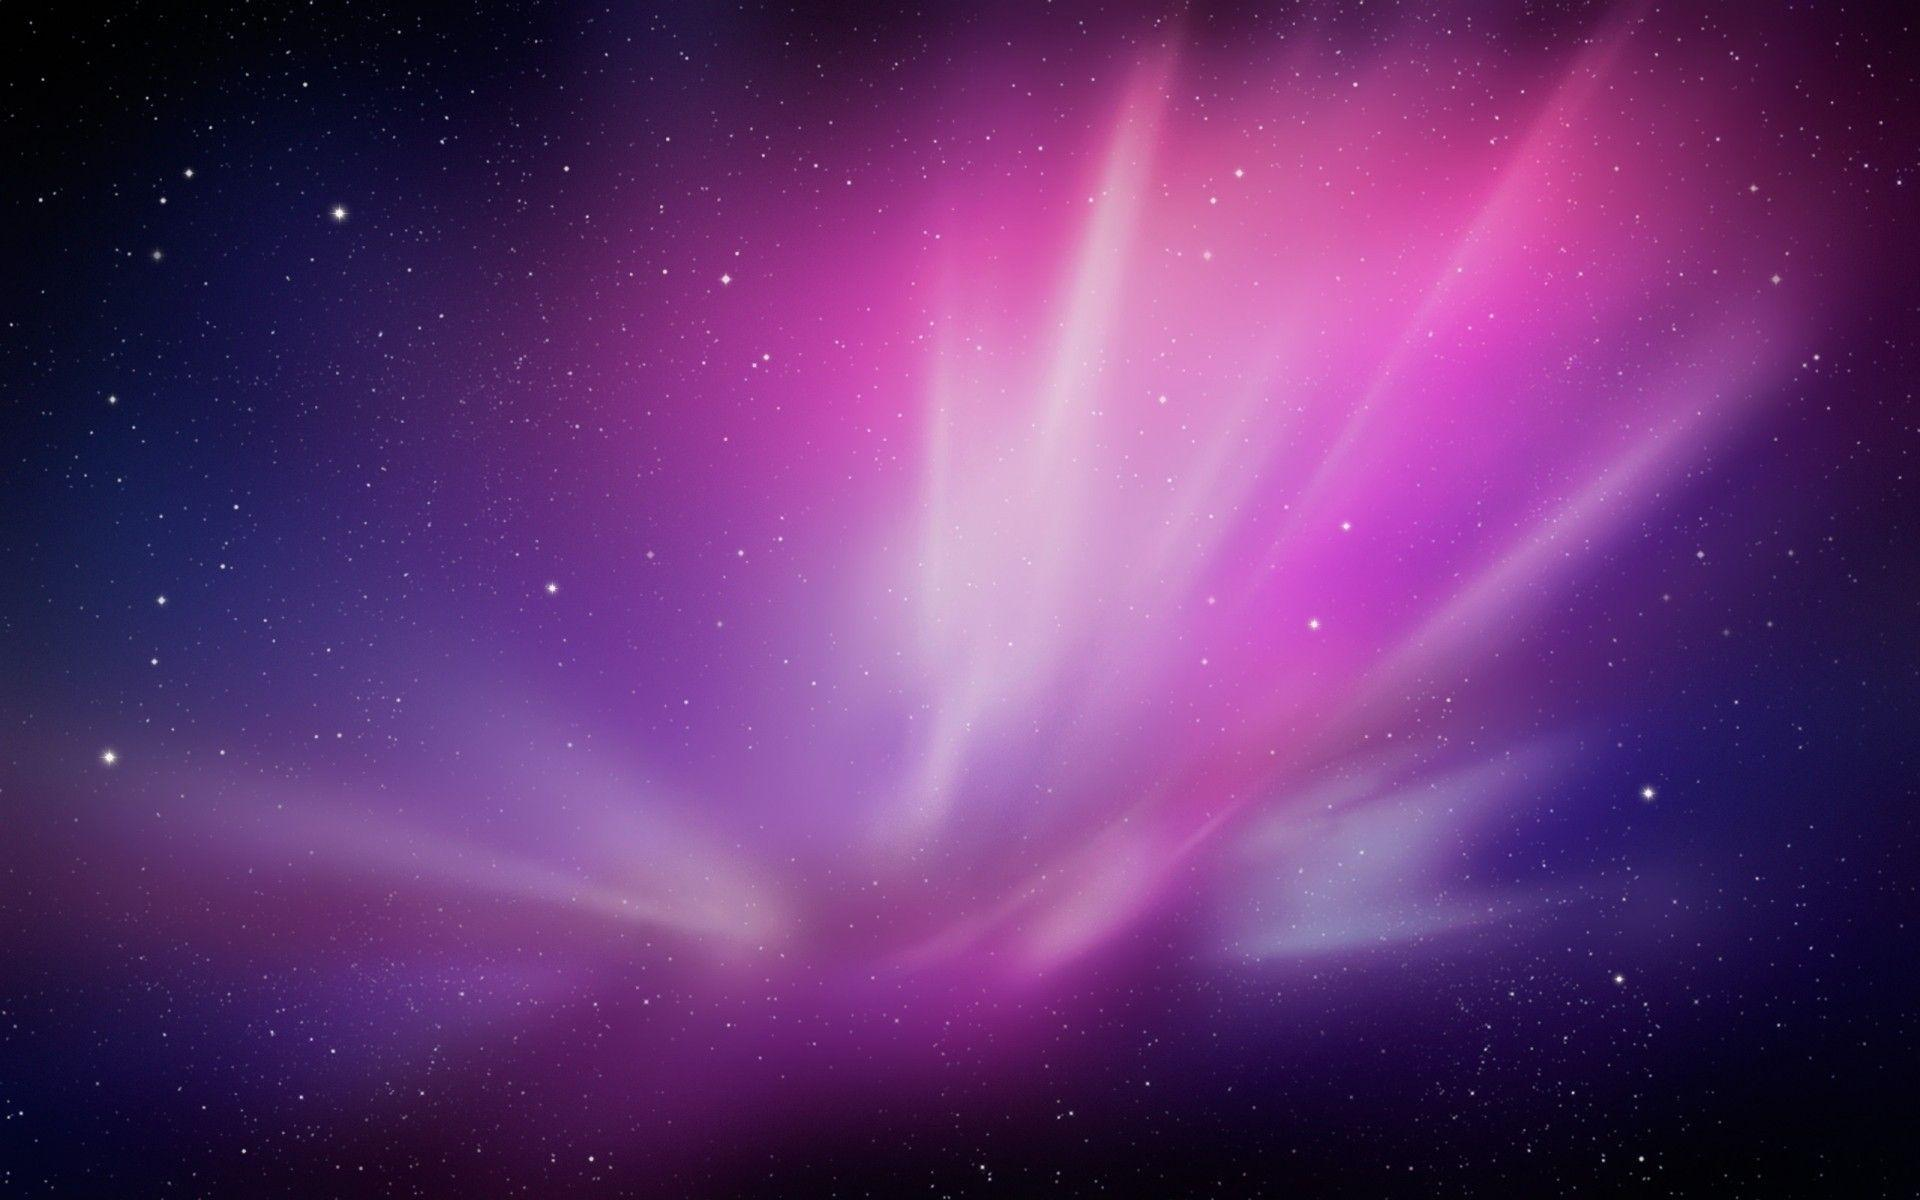 pink mac wallpaper hd - photo #29